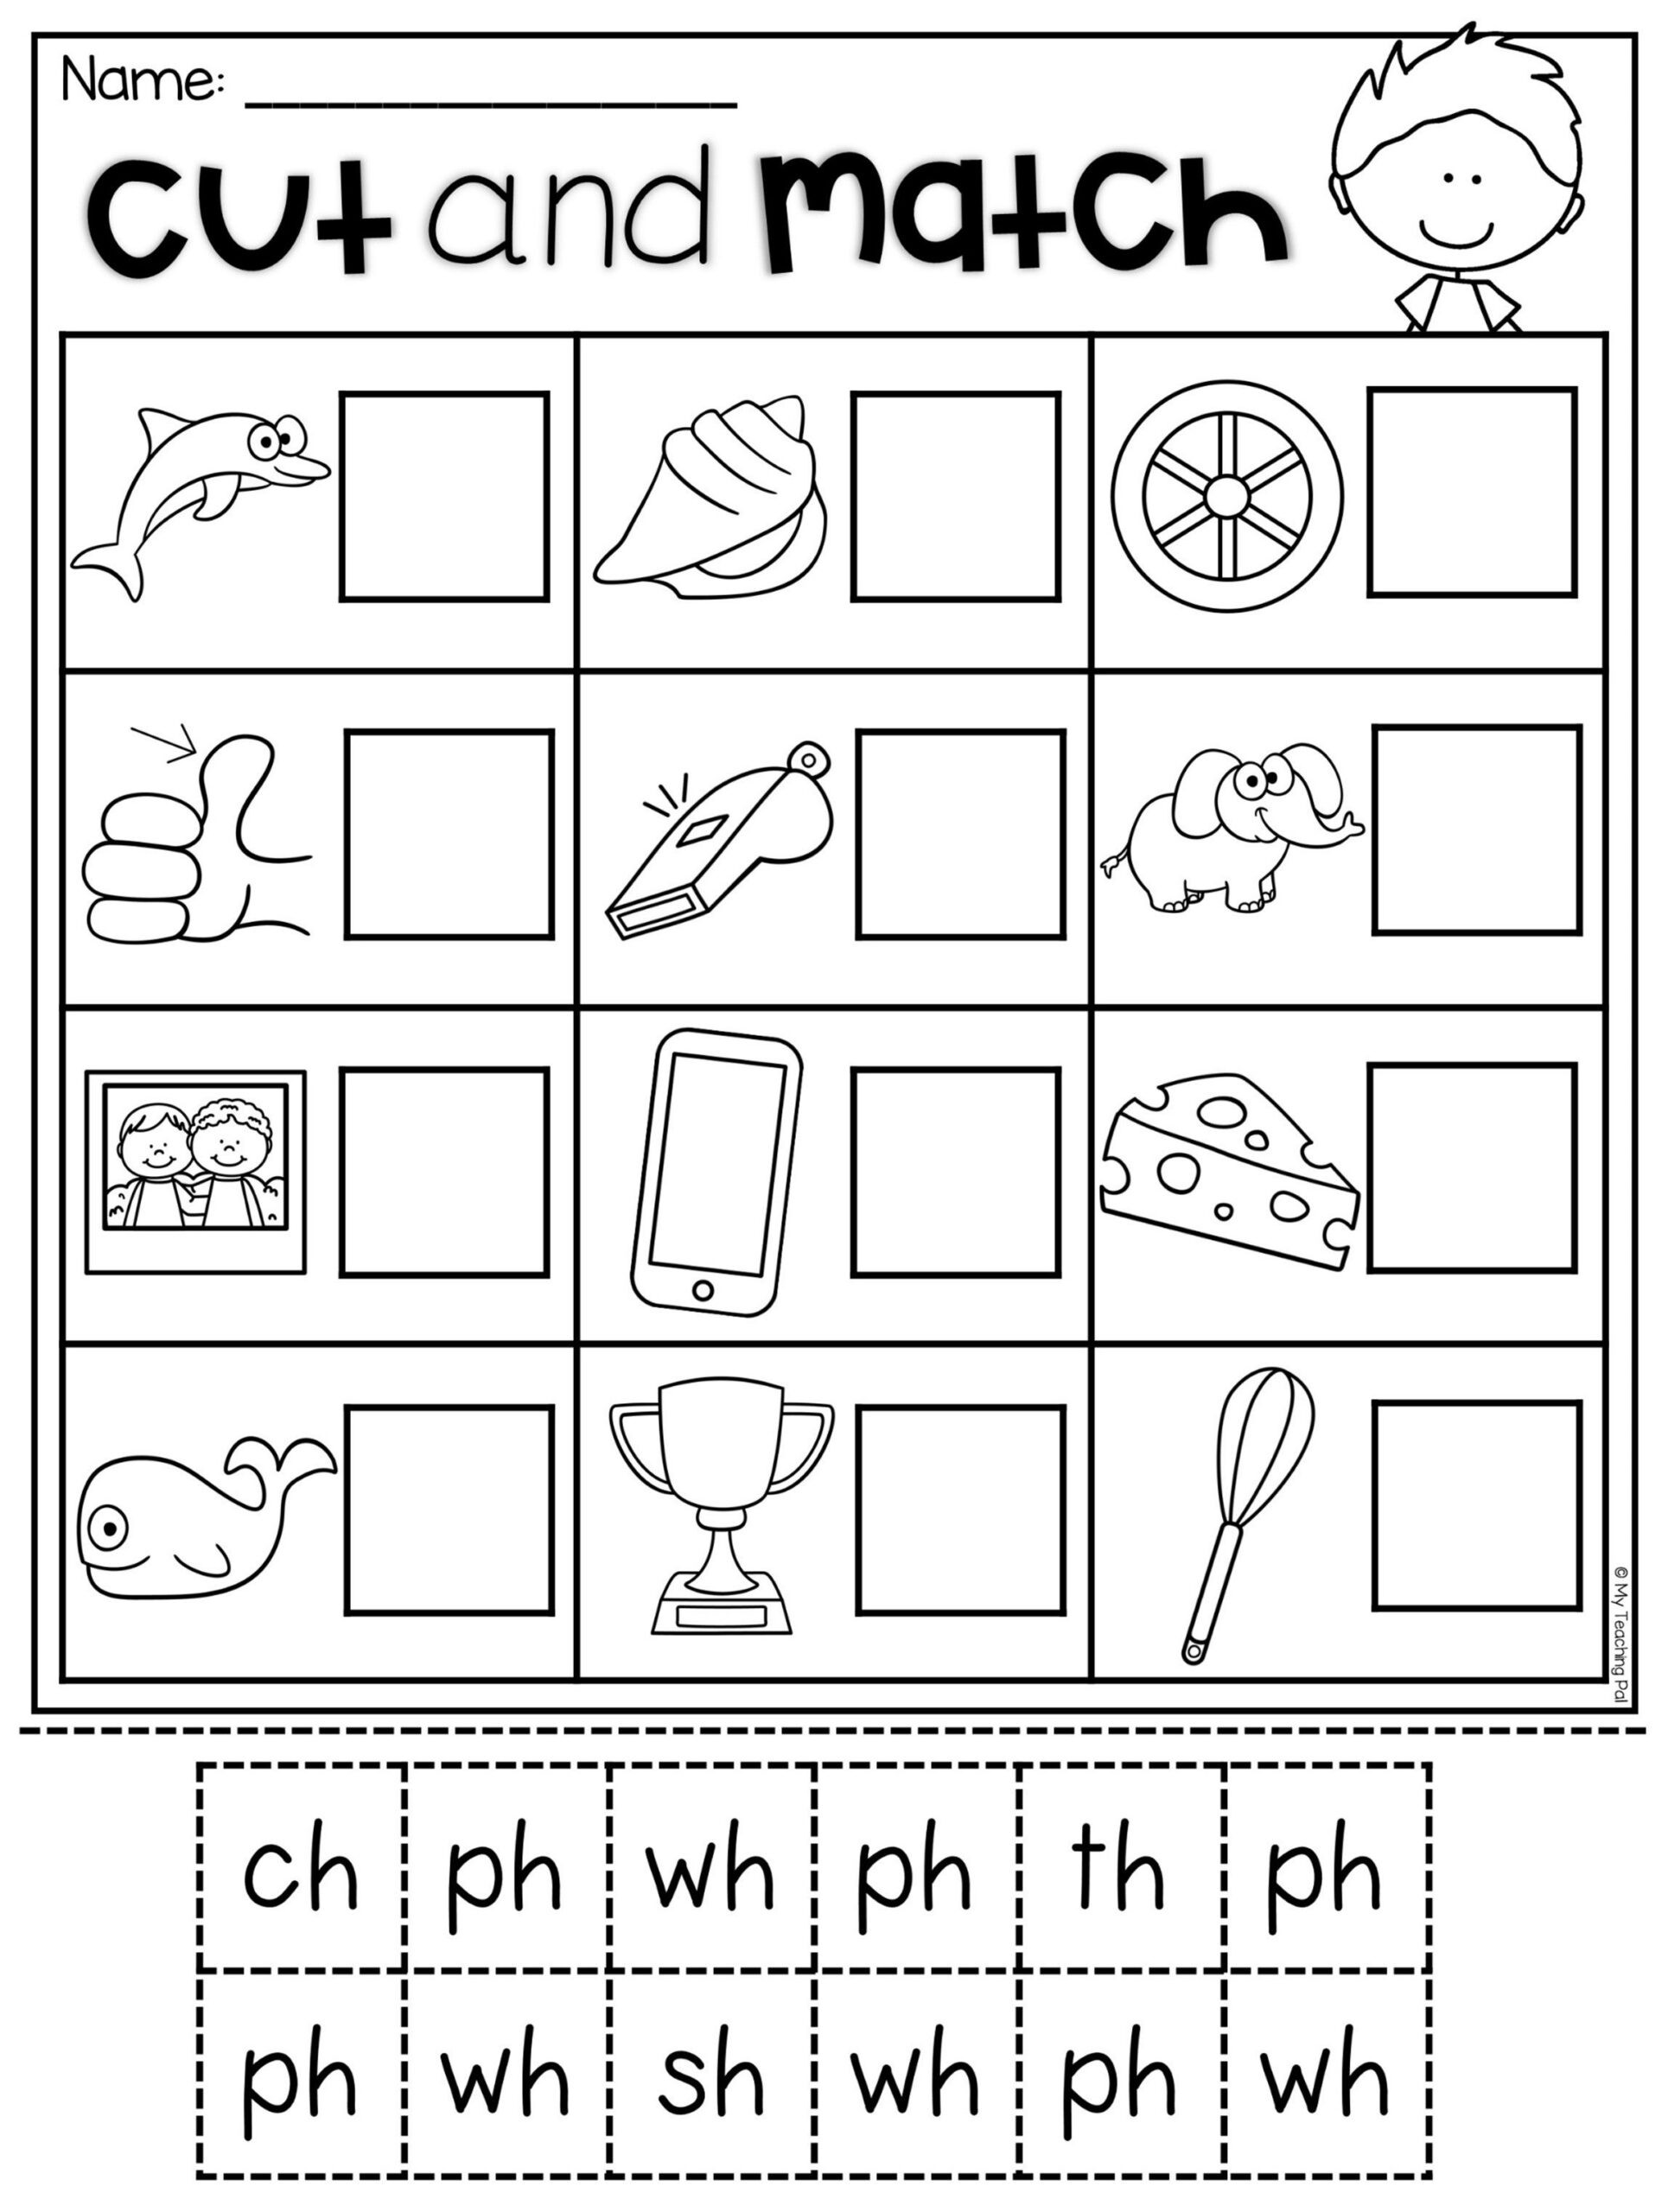 Energy Worksheets for 2nd Grade Digraph Worksheet Packet Ch Th Wh Ph Digraphs Worksheets